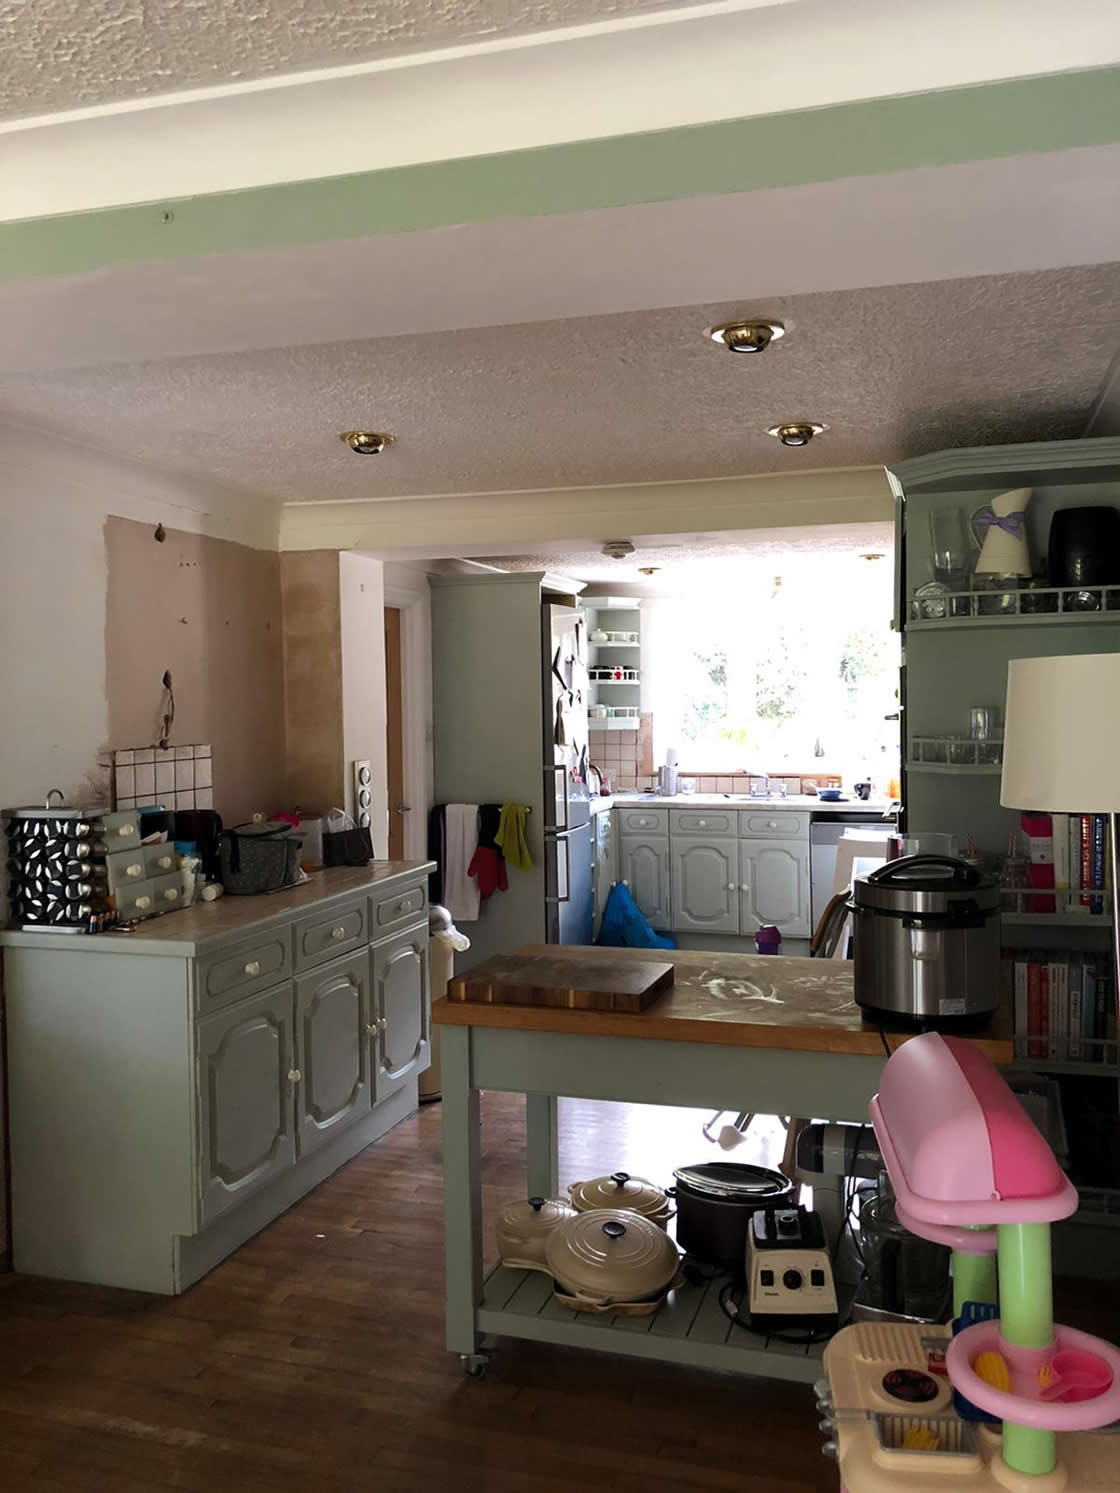 Caterham Painted Kitchen Project - Before 1